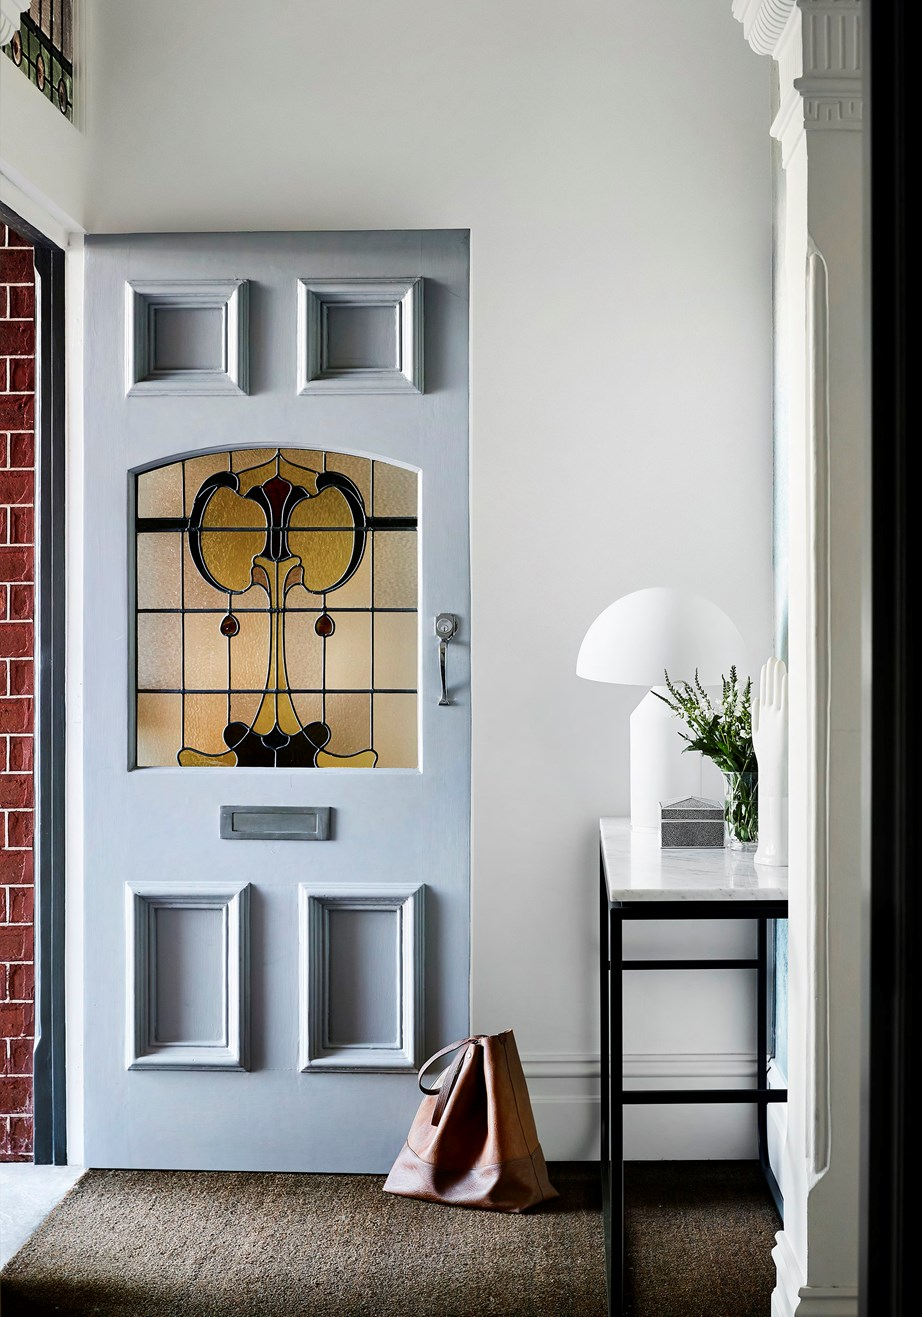 What would an interior designer see if they stepped through your front door?